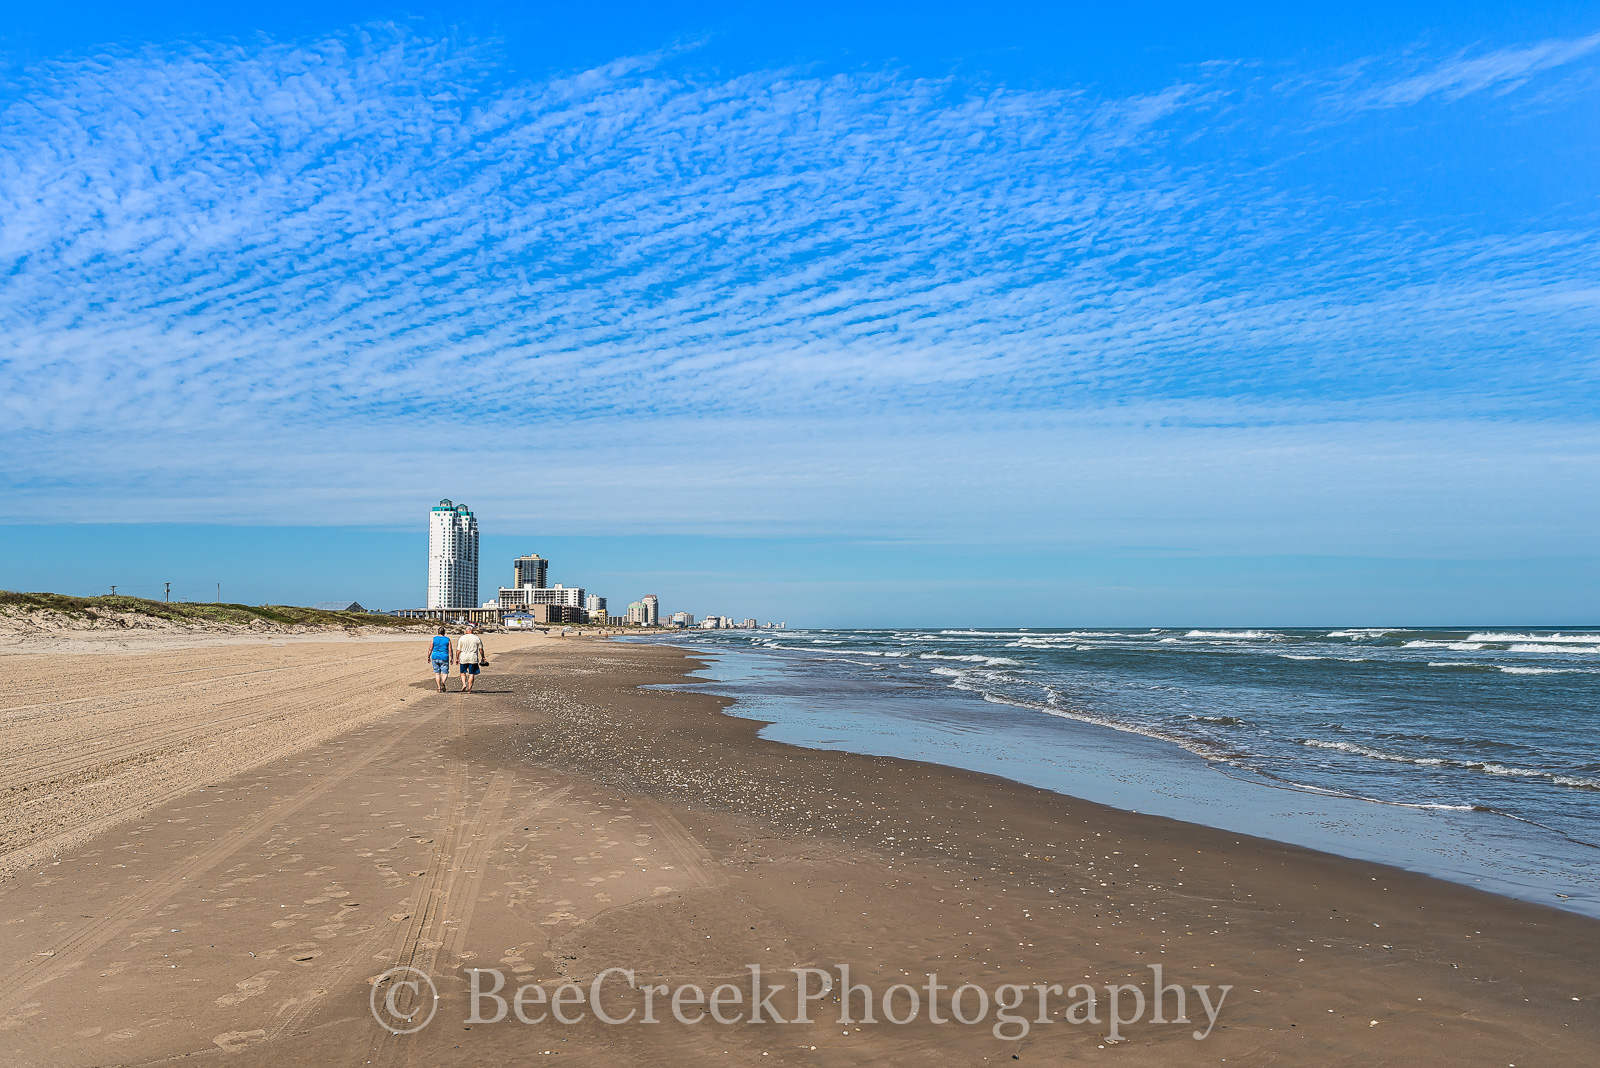 South Padre Island, Texas beach, beach, coastal, dunes, hotels, landscape, landscapes, ocean, sand, sand castles, sea shore, summer fun, surf, swimming, texas, water, wind surfing, photo